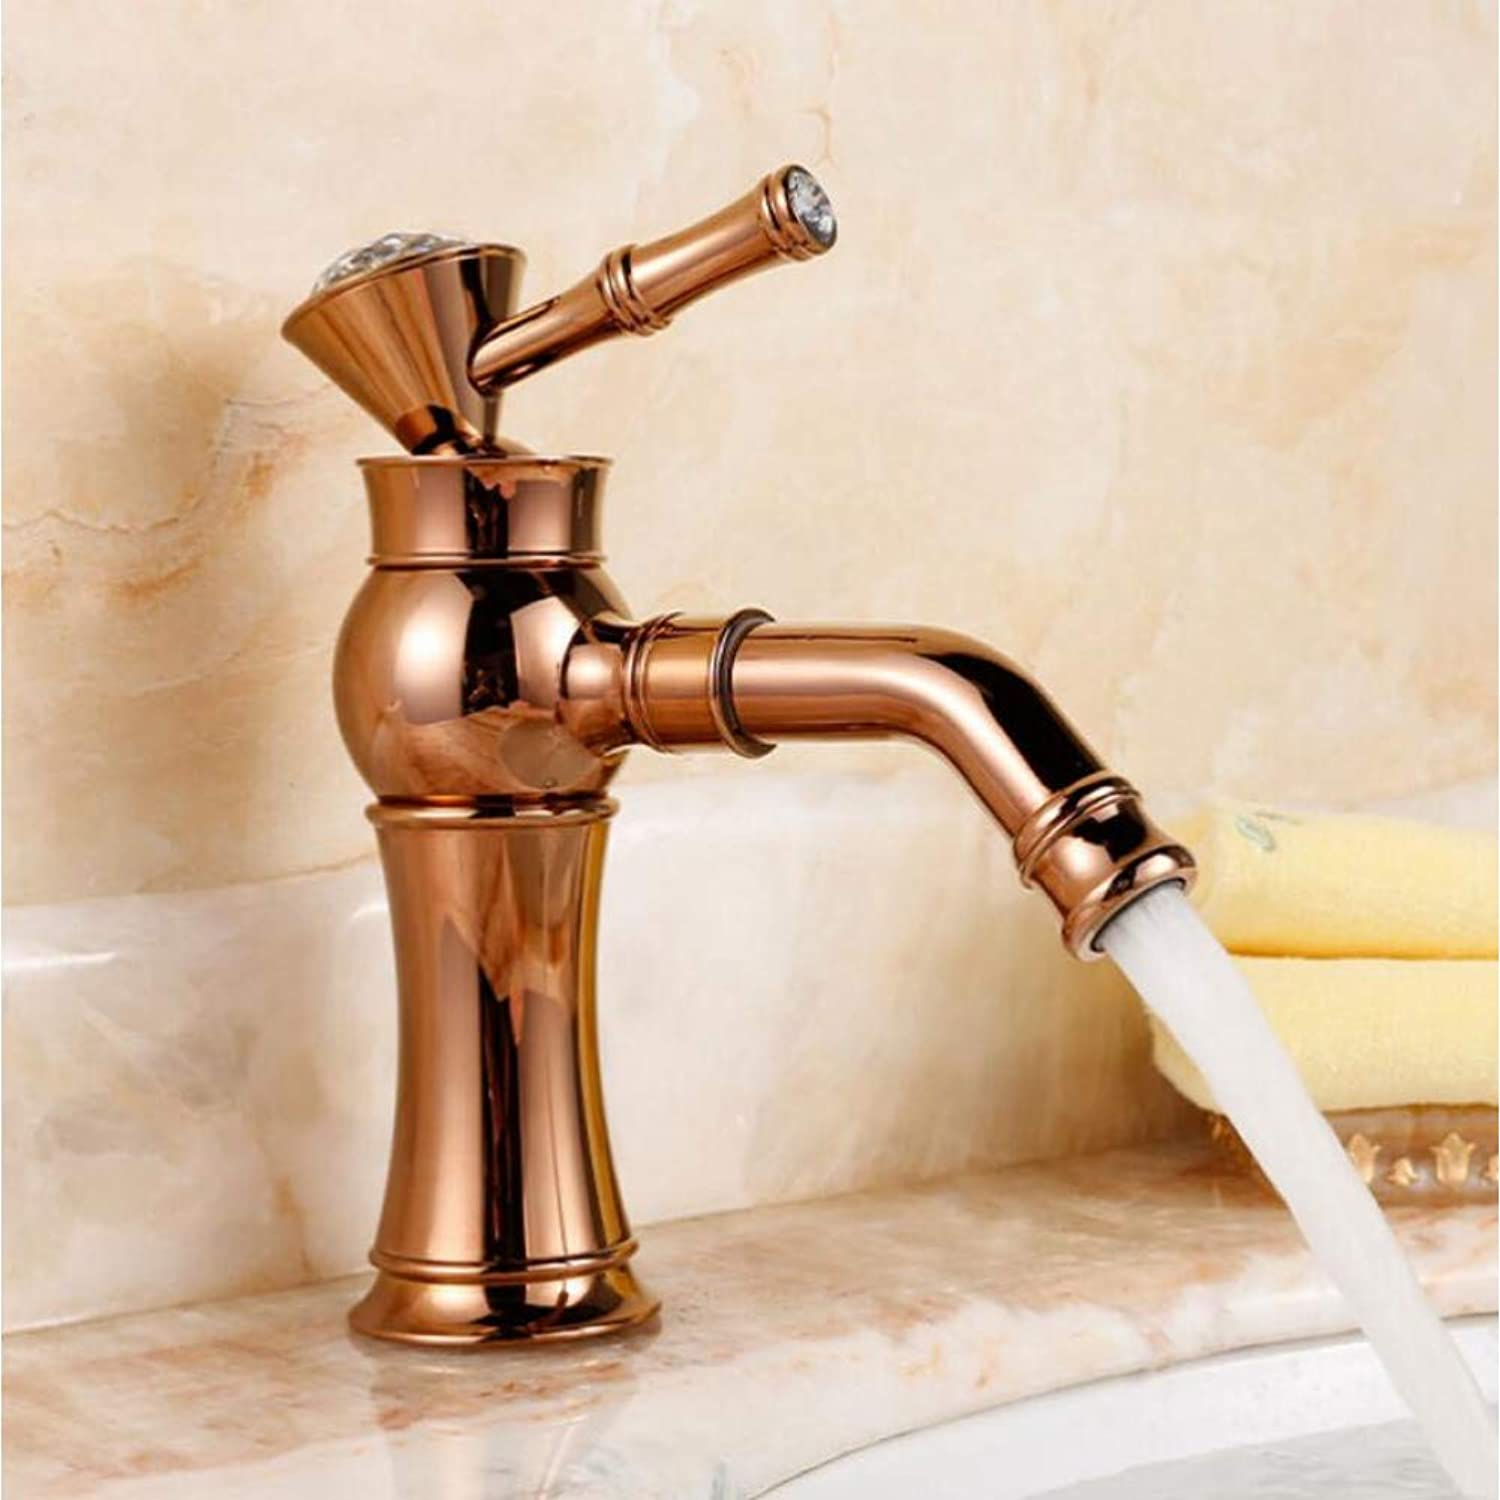 YHSGY Kitchen Taps Modern gold Faucet gold Bathroom Faucets gold Finish Basin Faucets gold Tall High Bathroom Sink Faucet Water Tap